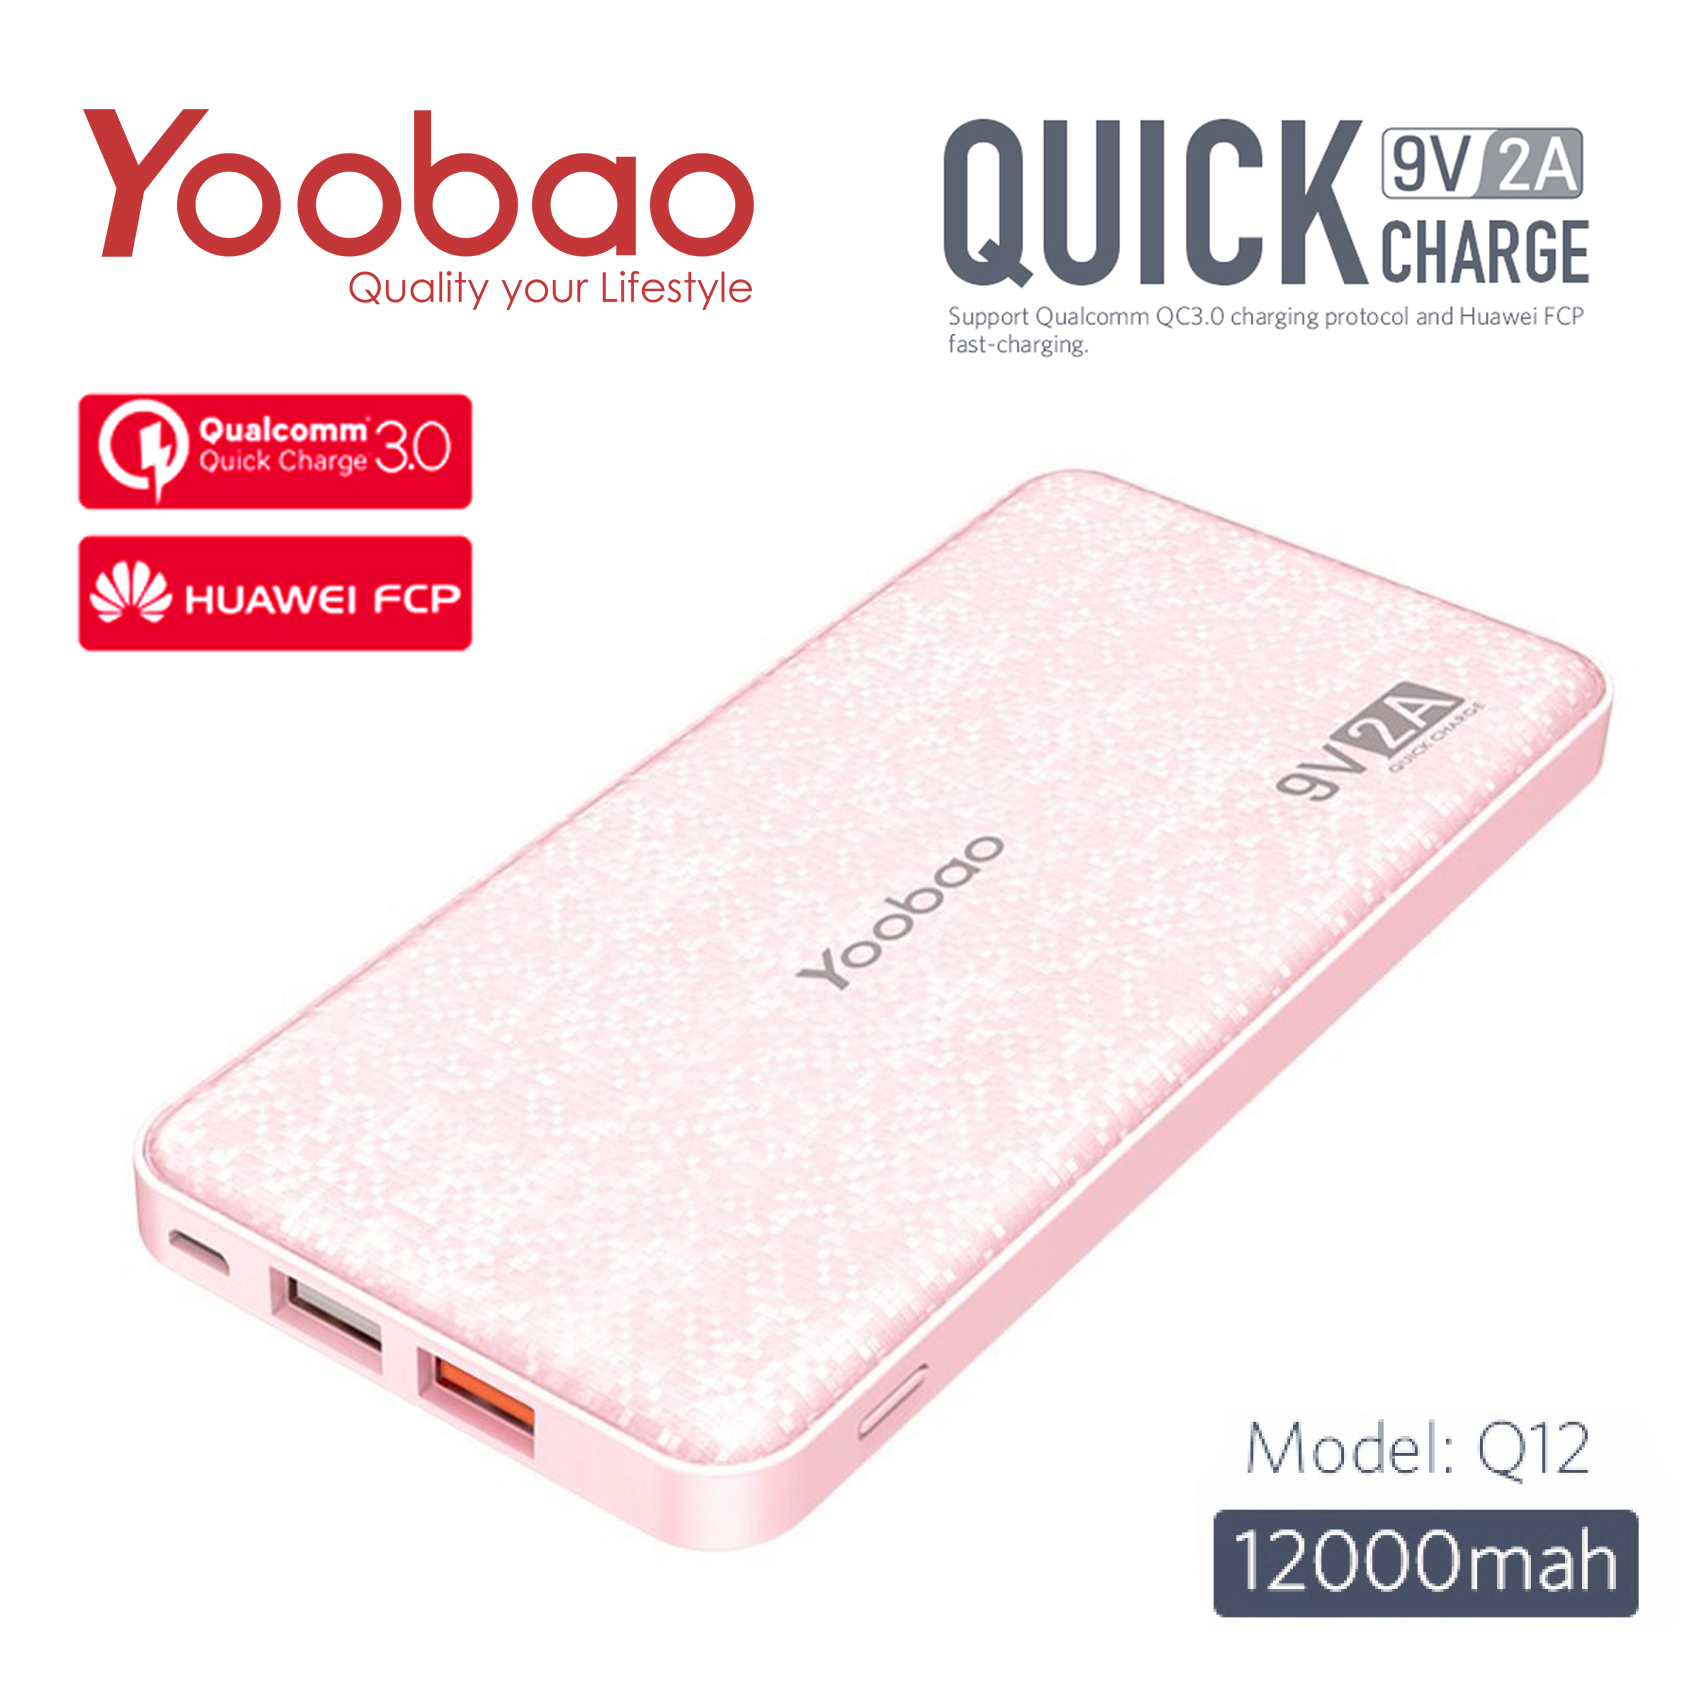 Yoobao Q12 12000 mAh Qualcomm 3.0 Portable Quick Charge Power Bank - Pink